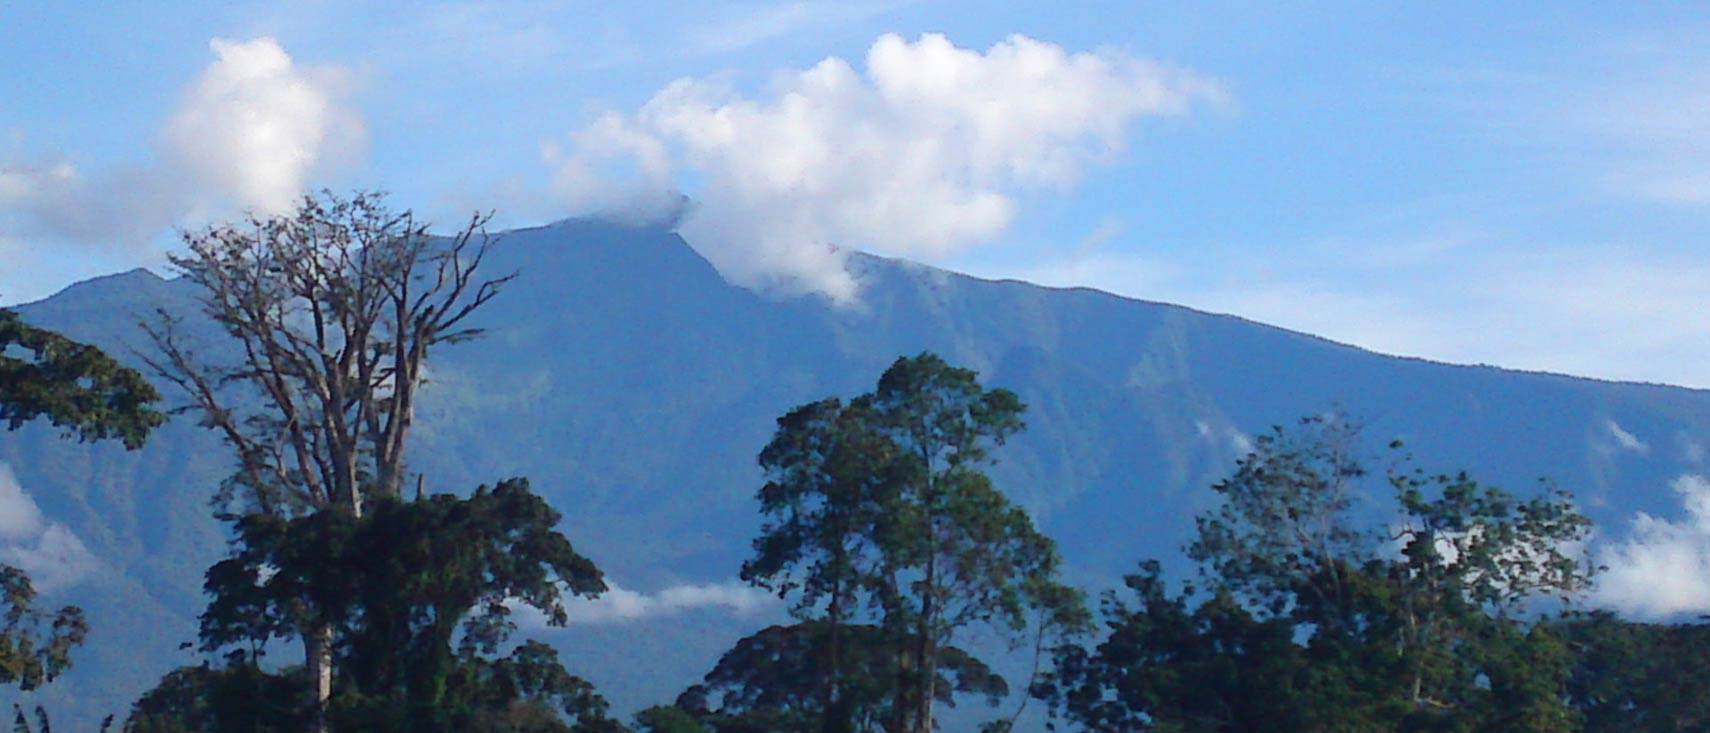 'Pico Basilé on the island of Bioko' from the web at 'http://www.nationsonline.org/oneworld/../gallery/Equatorial_Guinea/Pico-Basile.jpg'